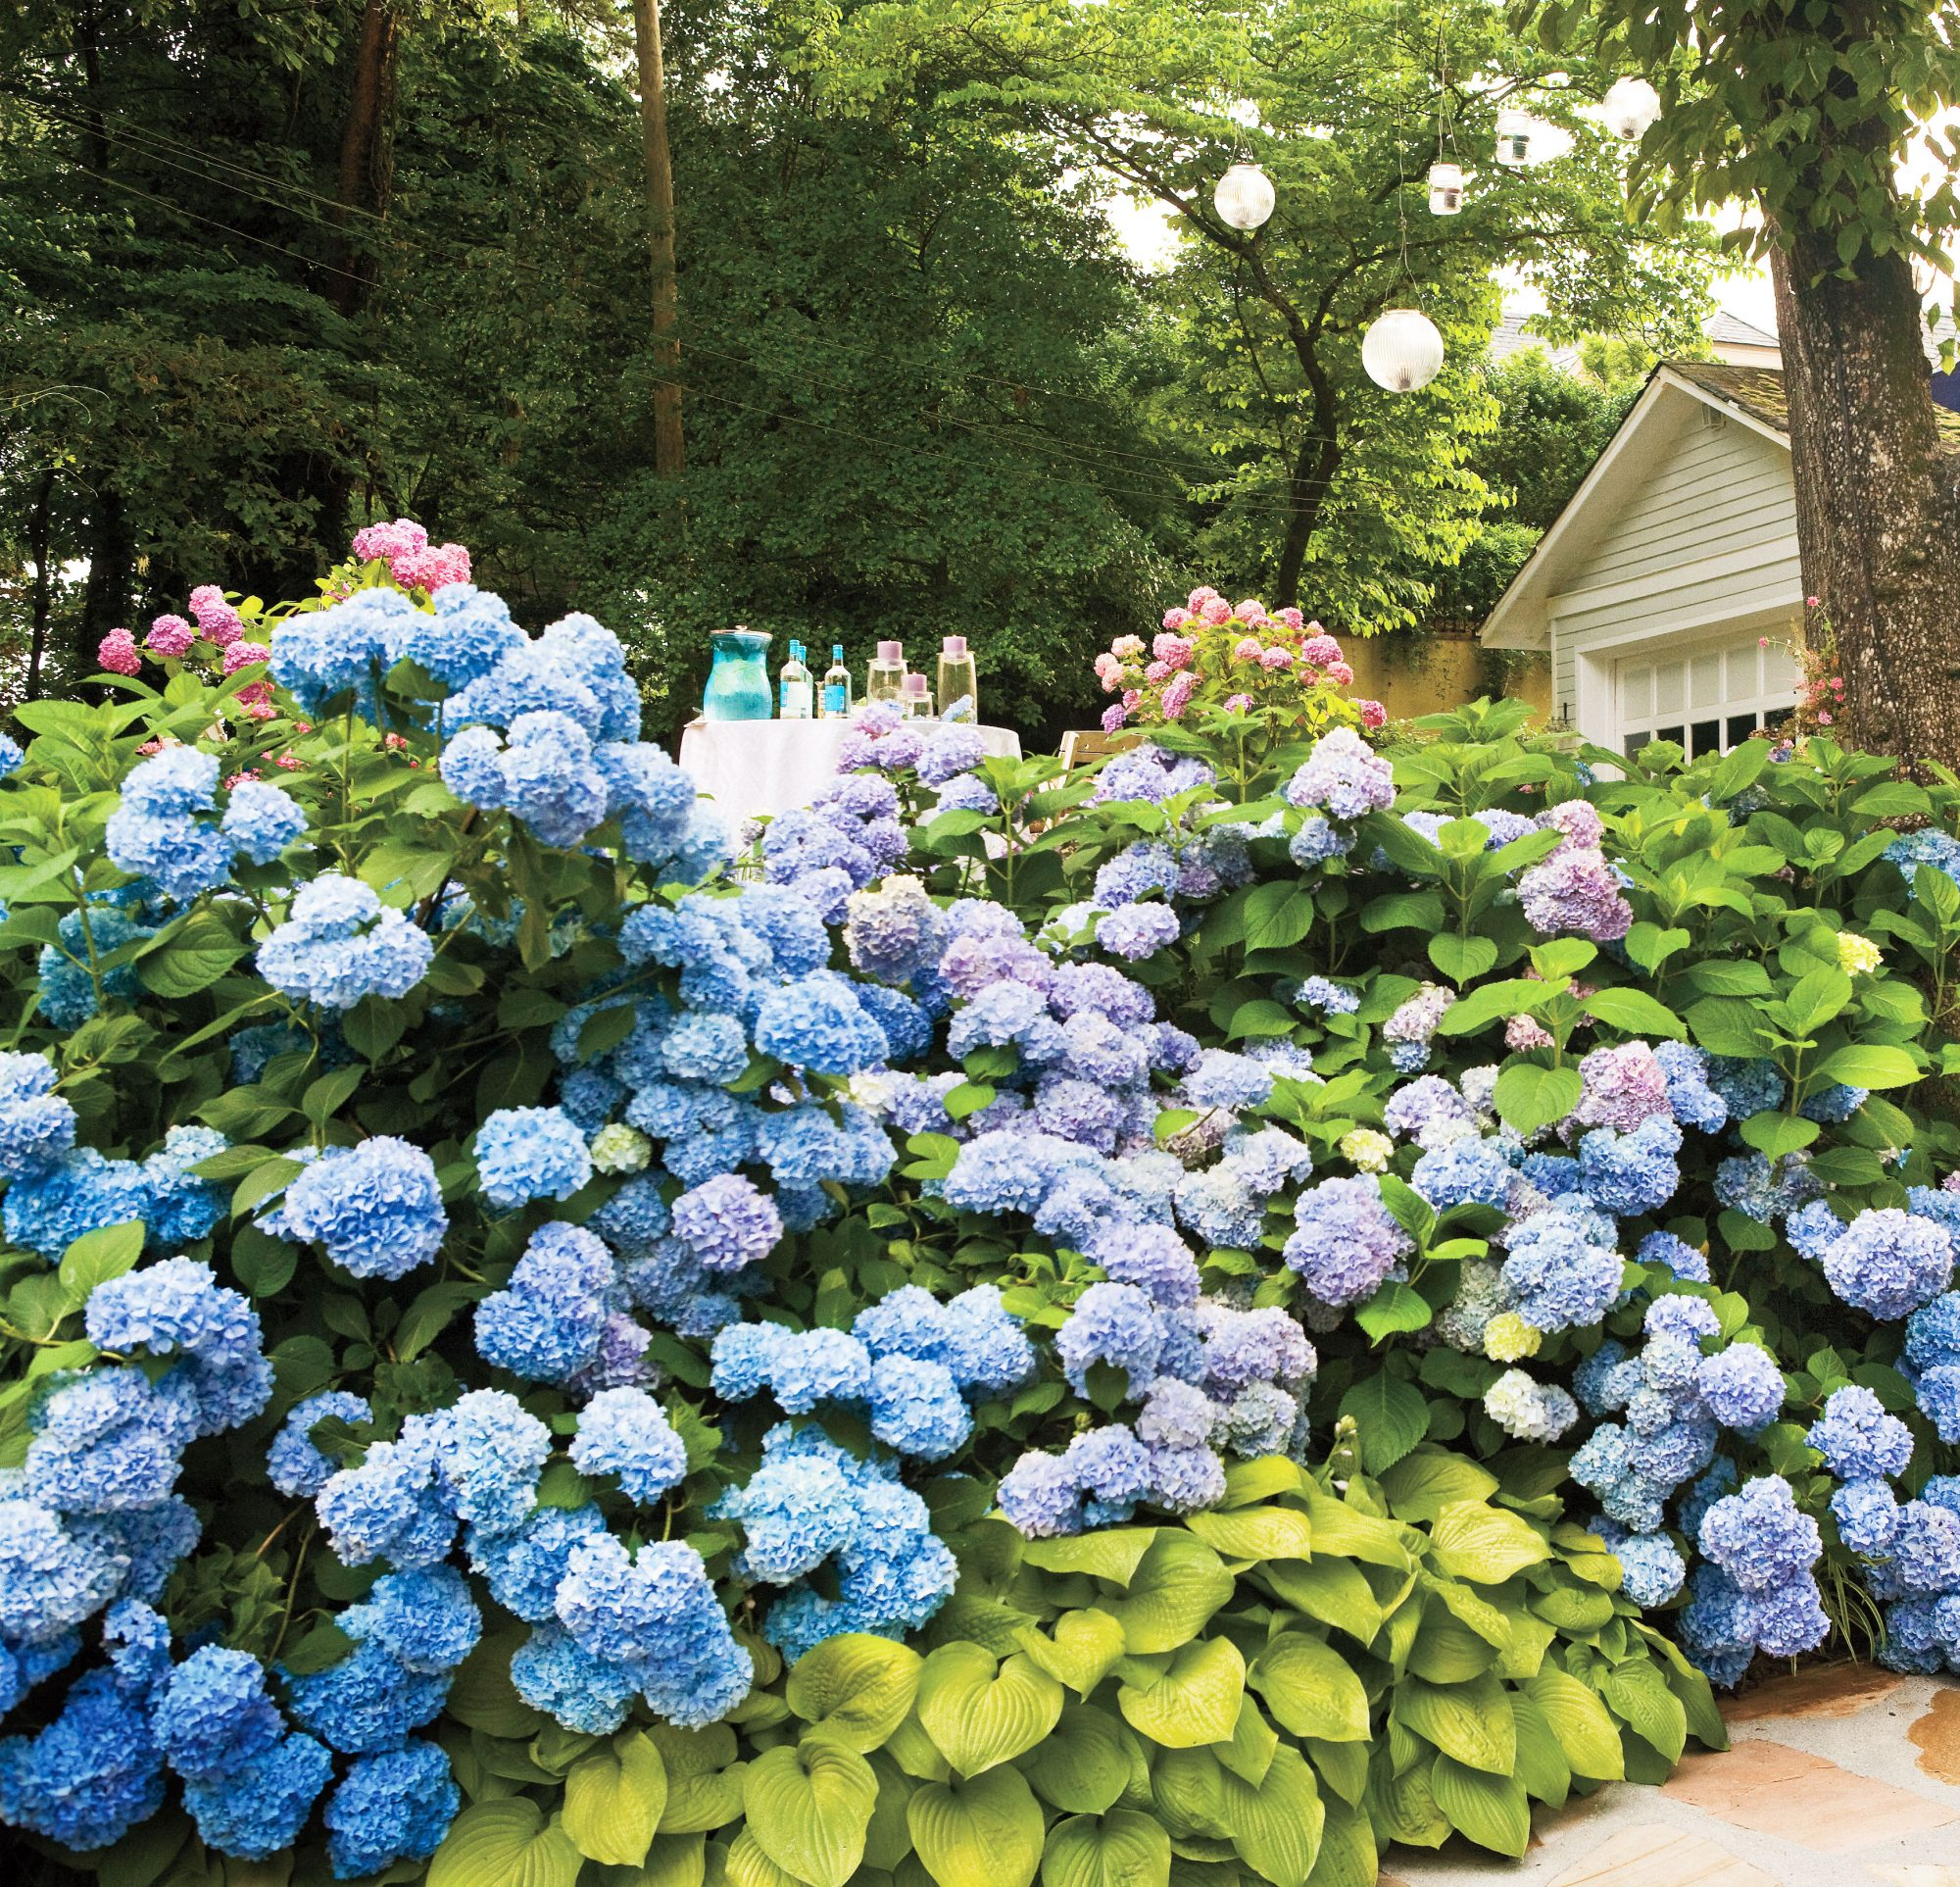 Hydrangea Shrubs with party in the background